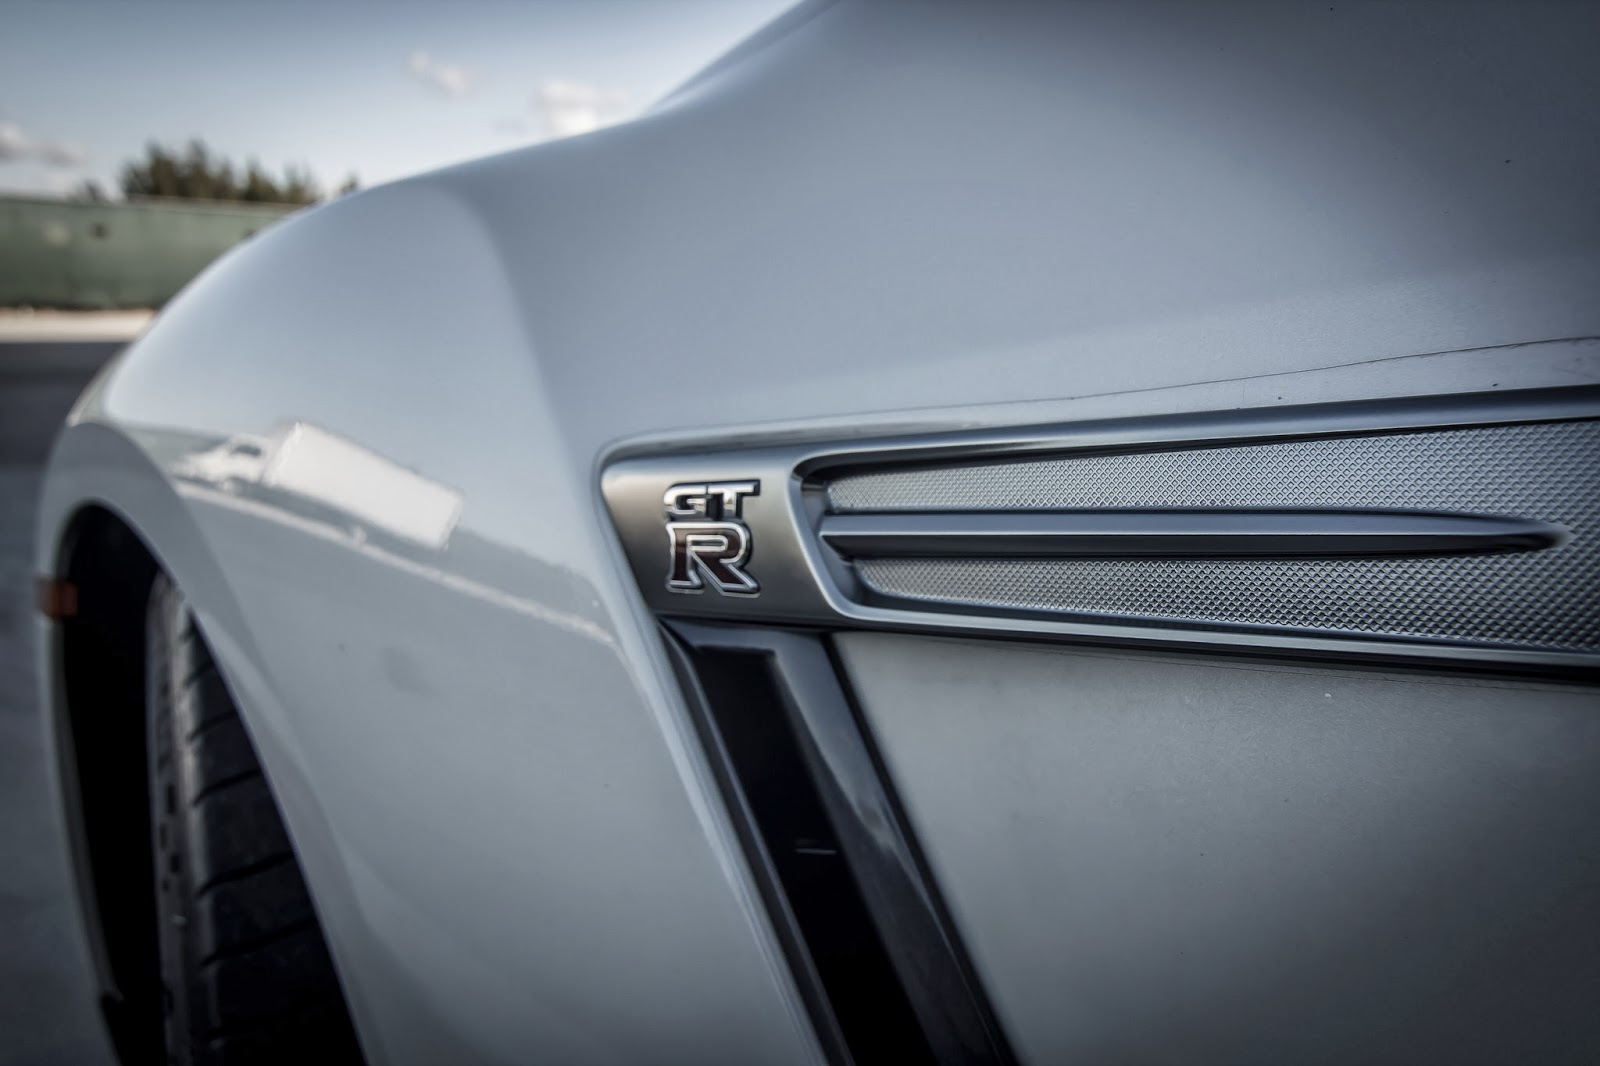 2010 Nissan GTR Wing Badge